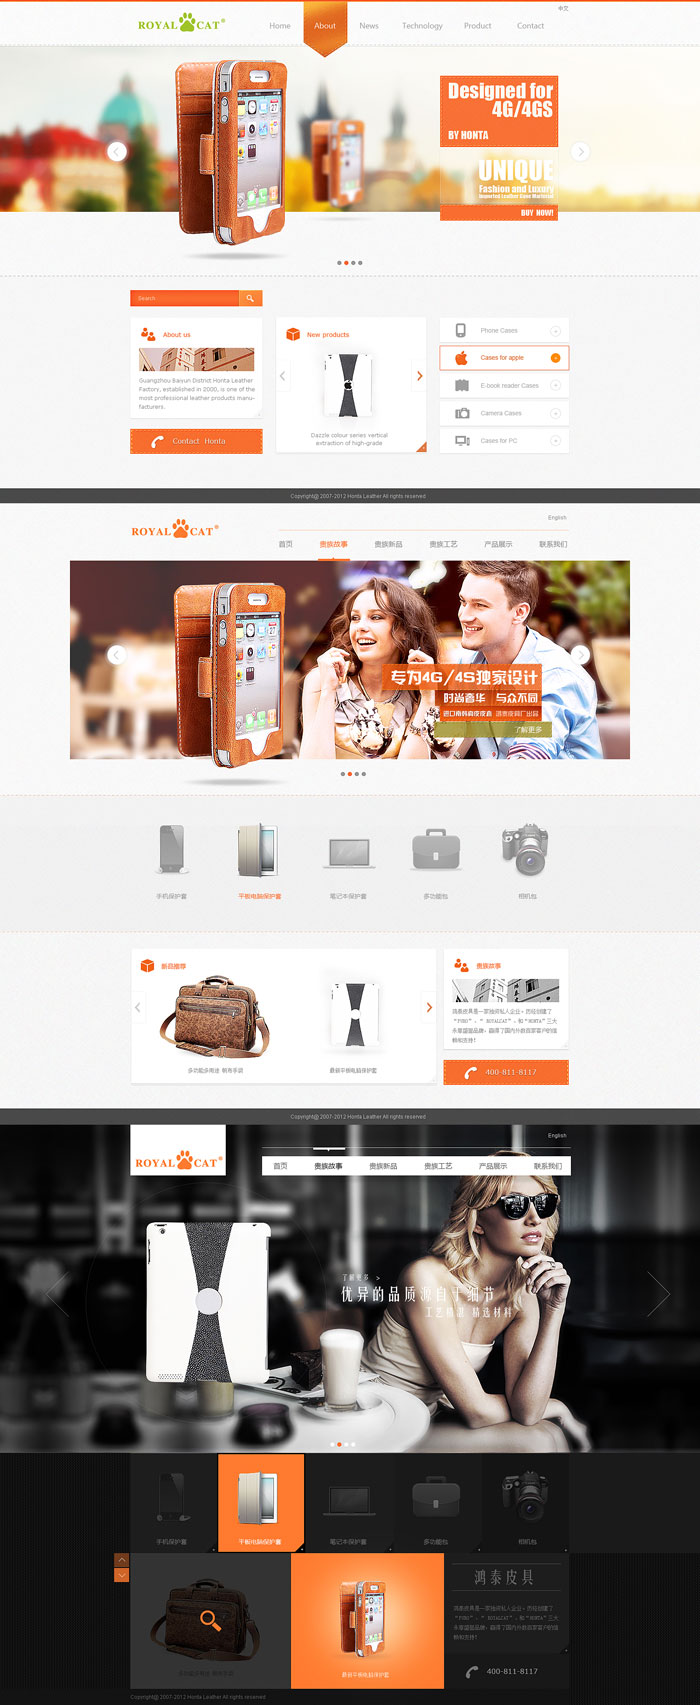 Wonderful 336175602 Creative And Modern Web Design Layouts For Inspiration